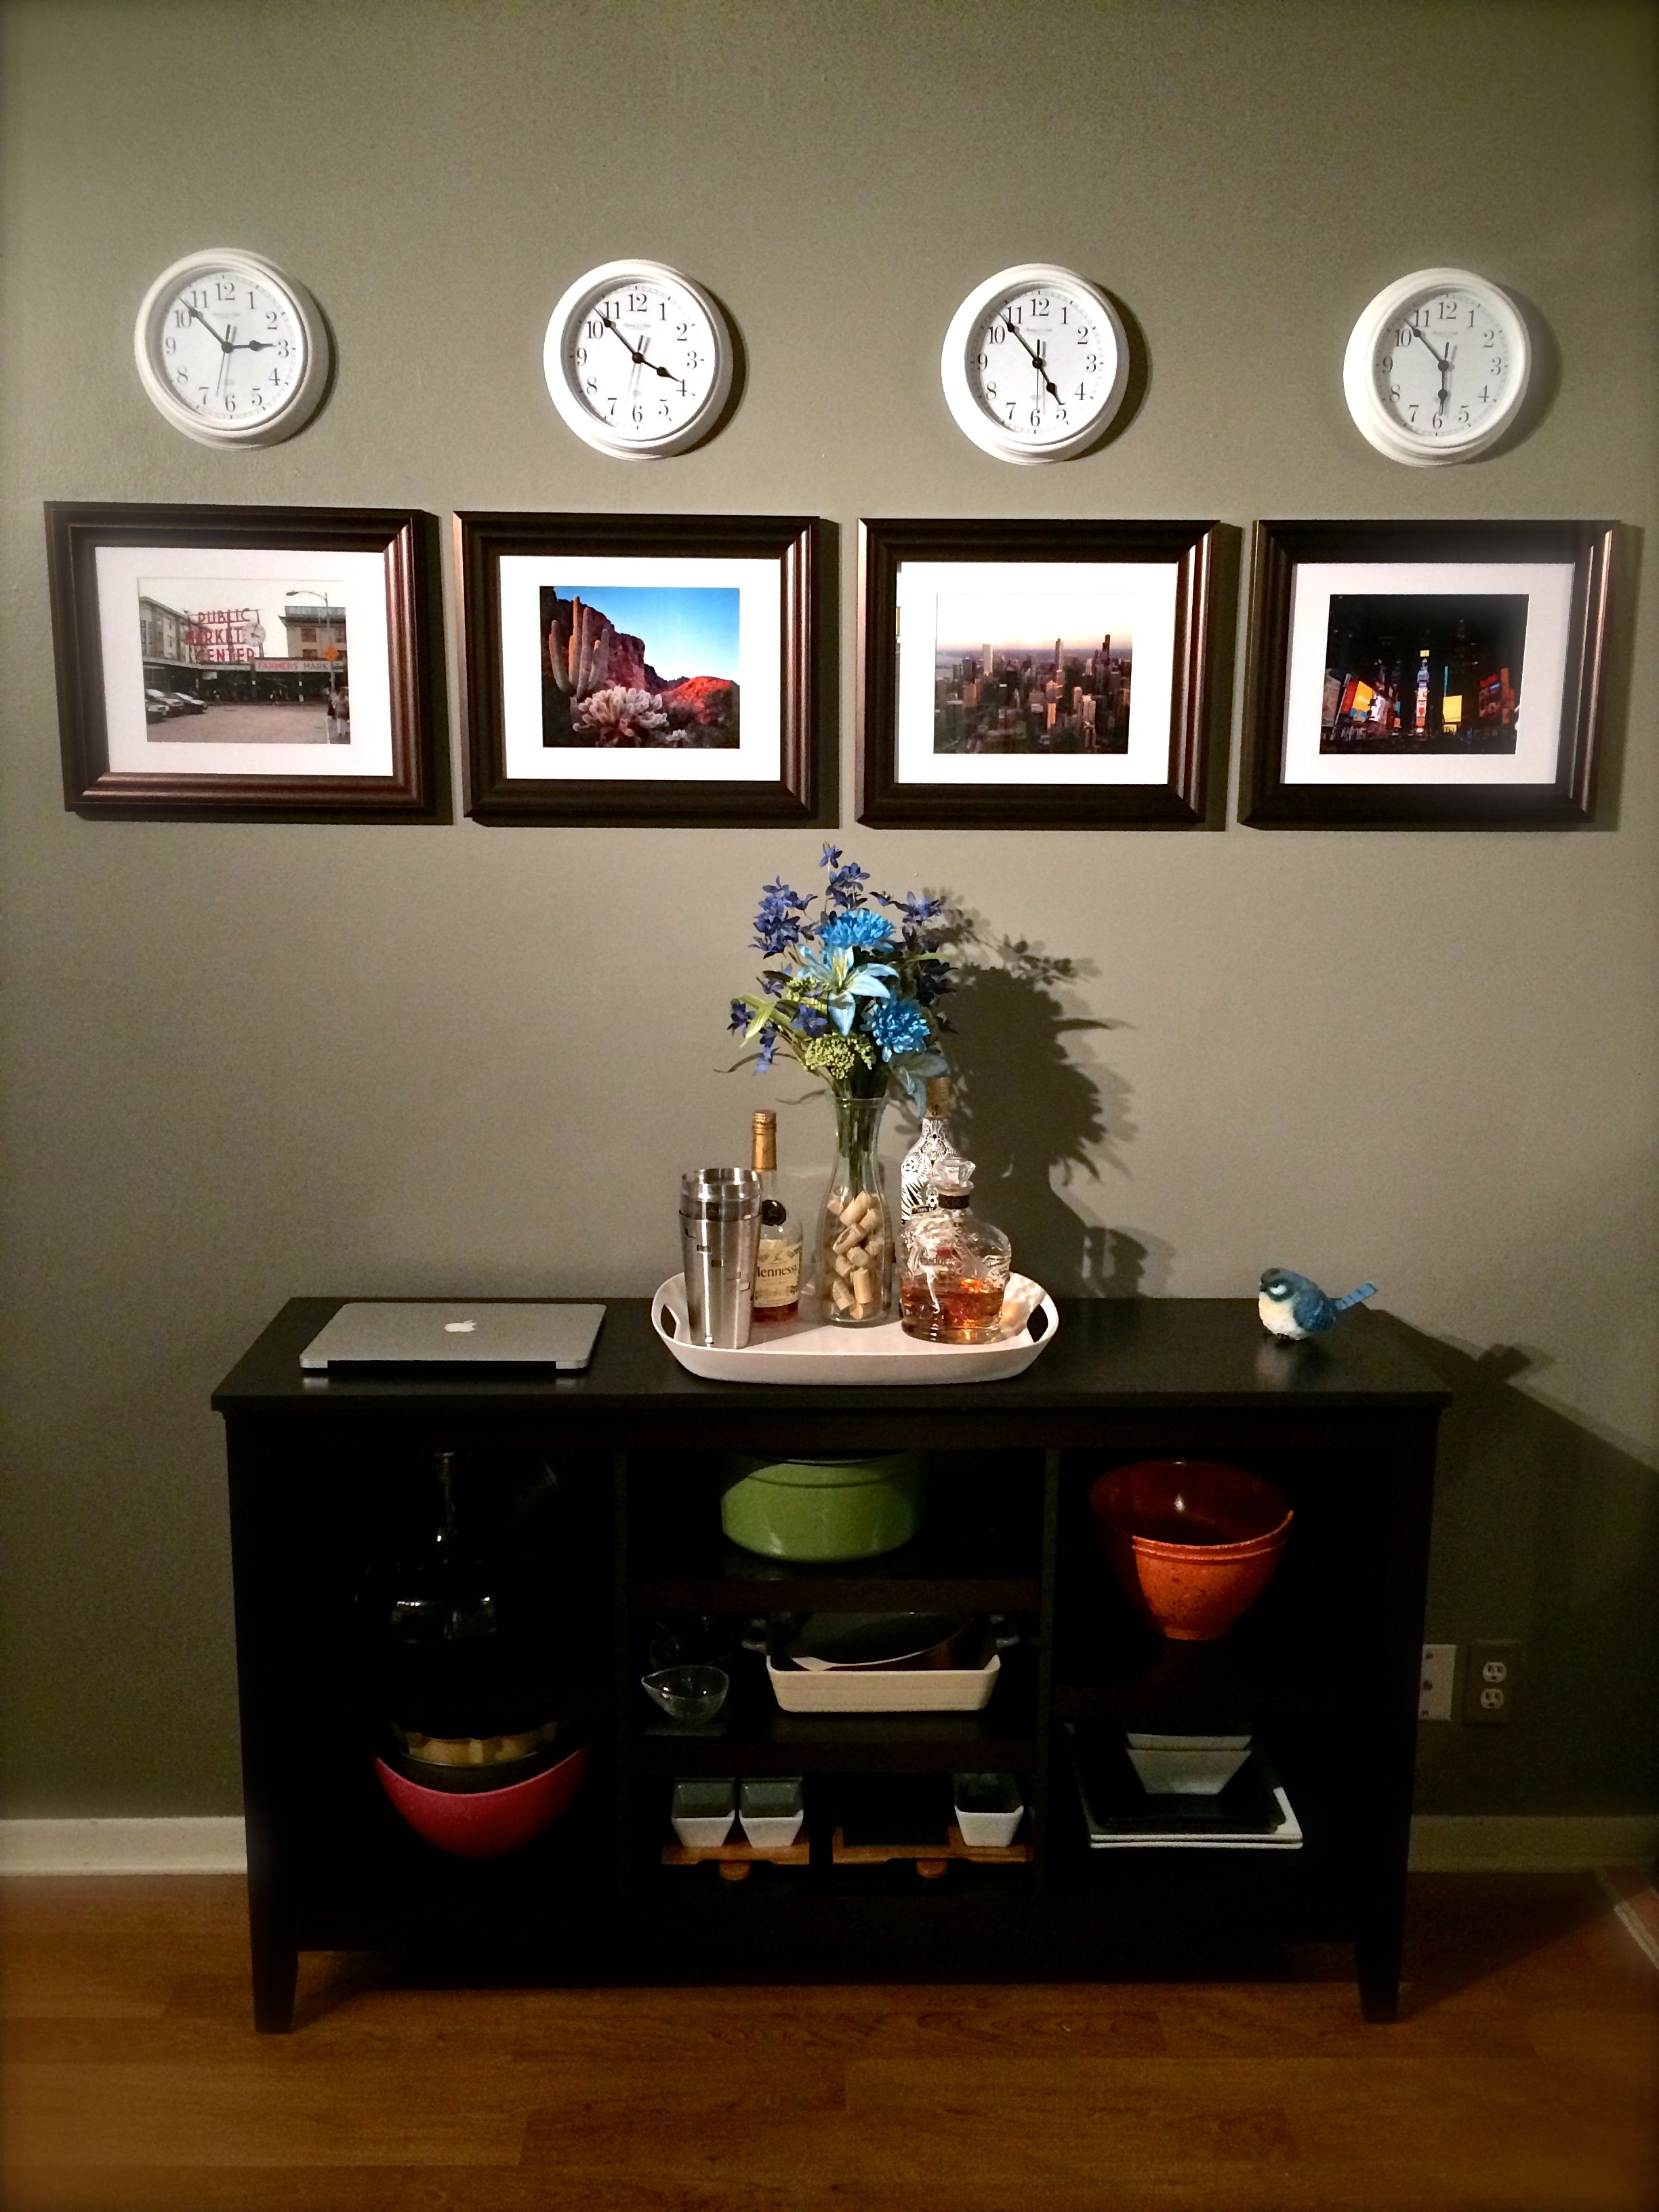 Time Zone Wall Design Display Your Own Original Pictures